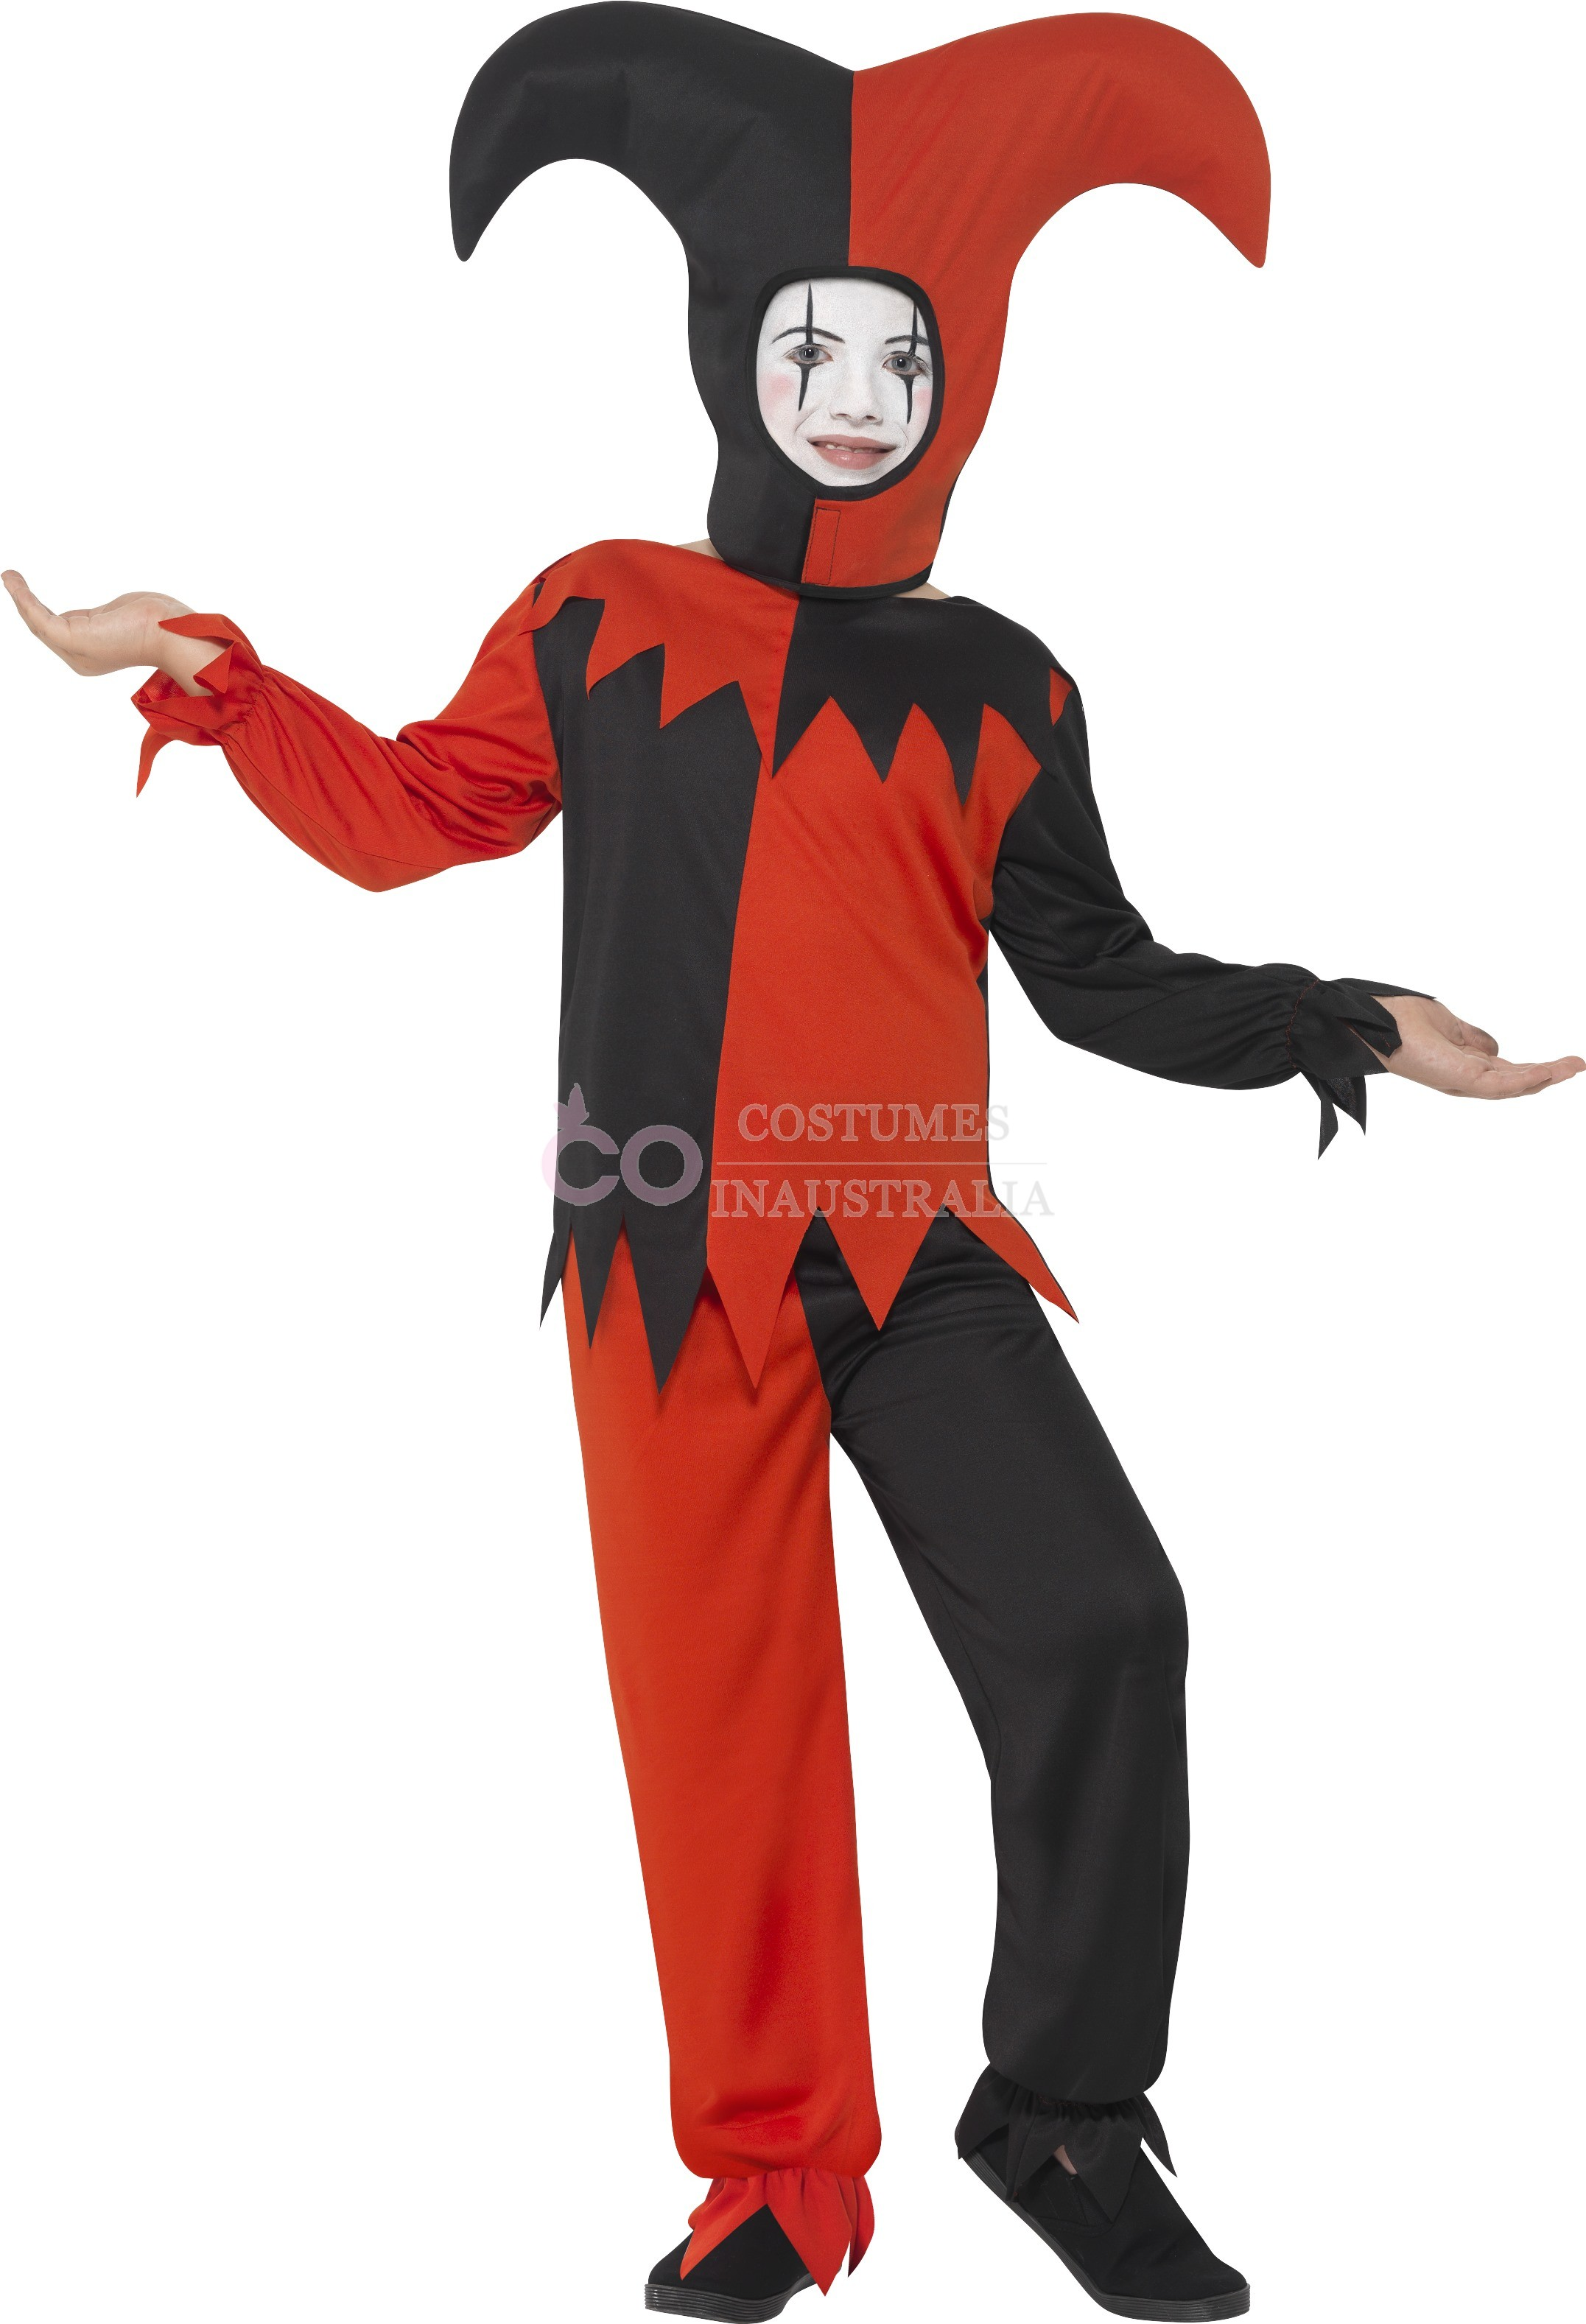 sc 1 st  Costumes Australia & Twisted Jester Costume Halloween Boys Child Kids Harlequin Mask Party